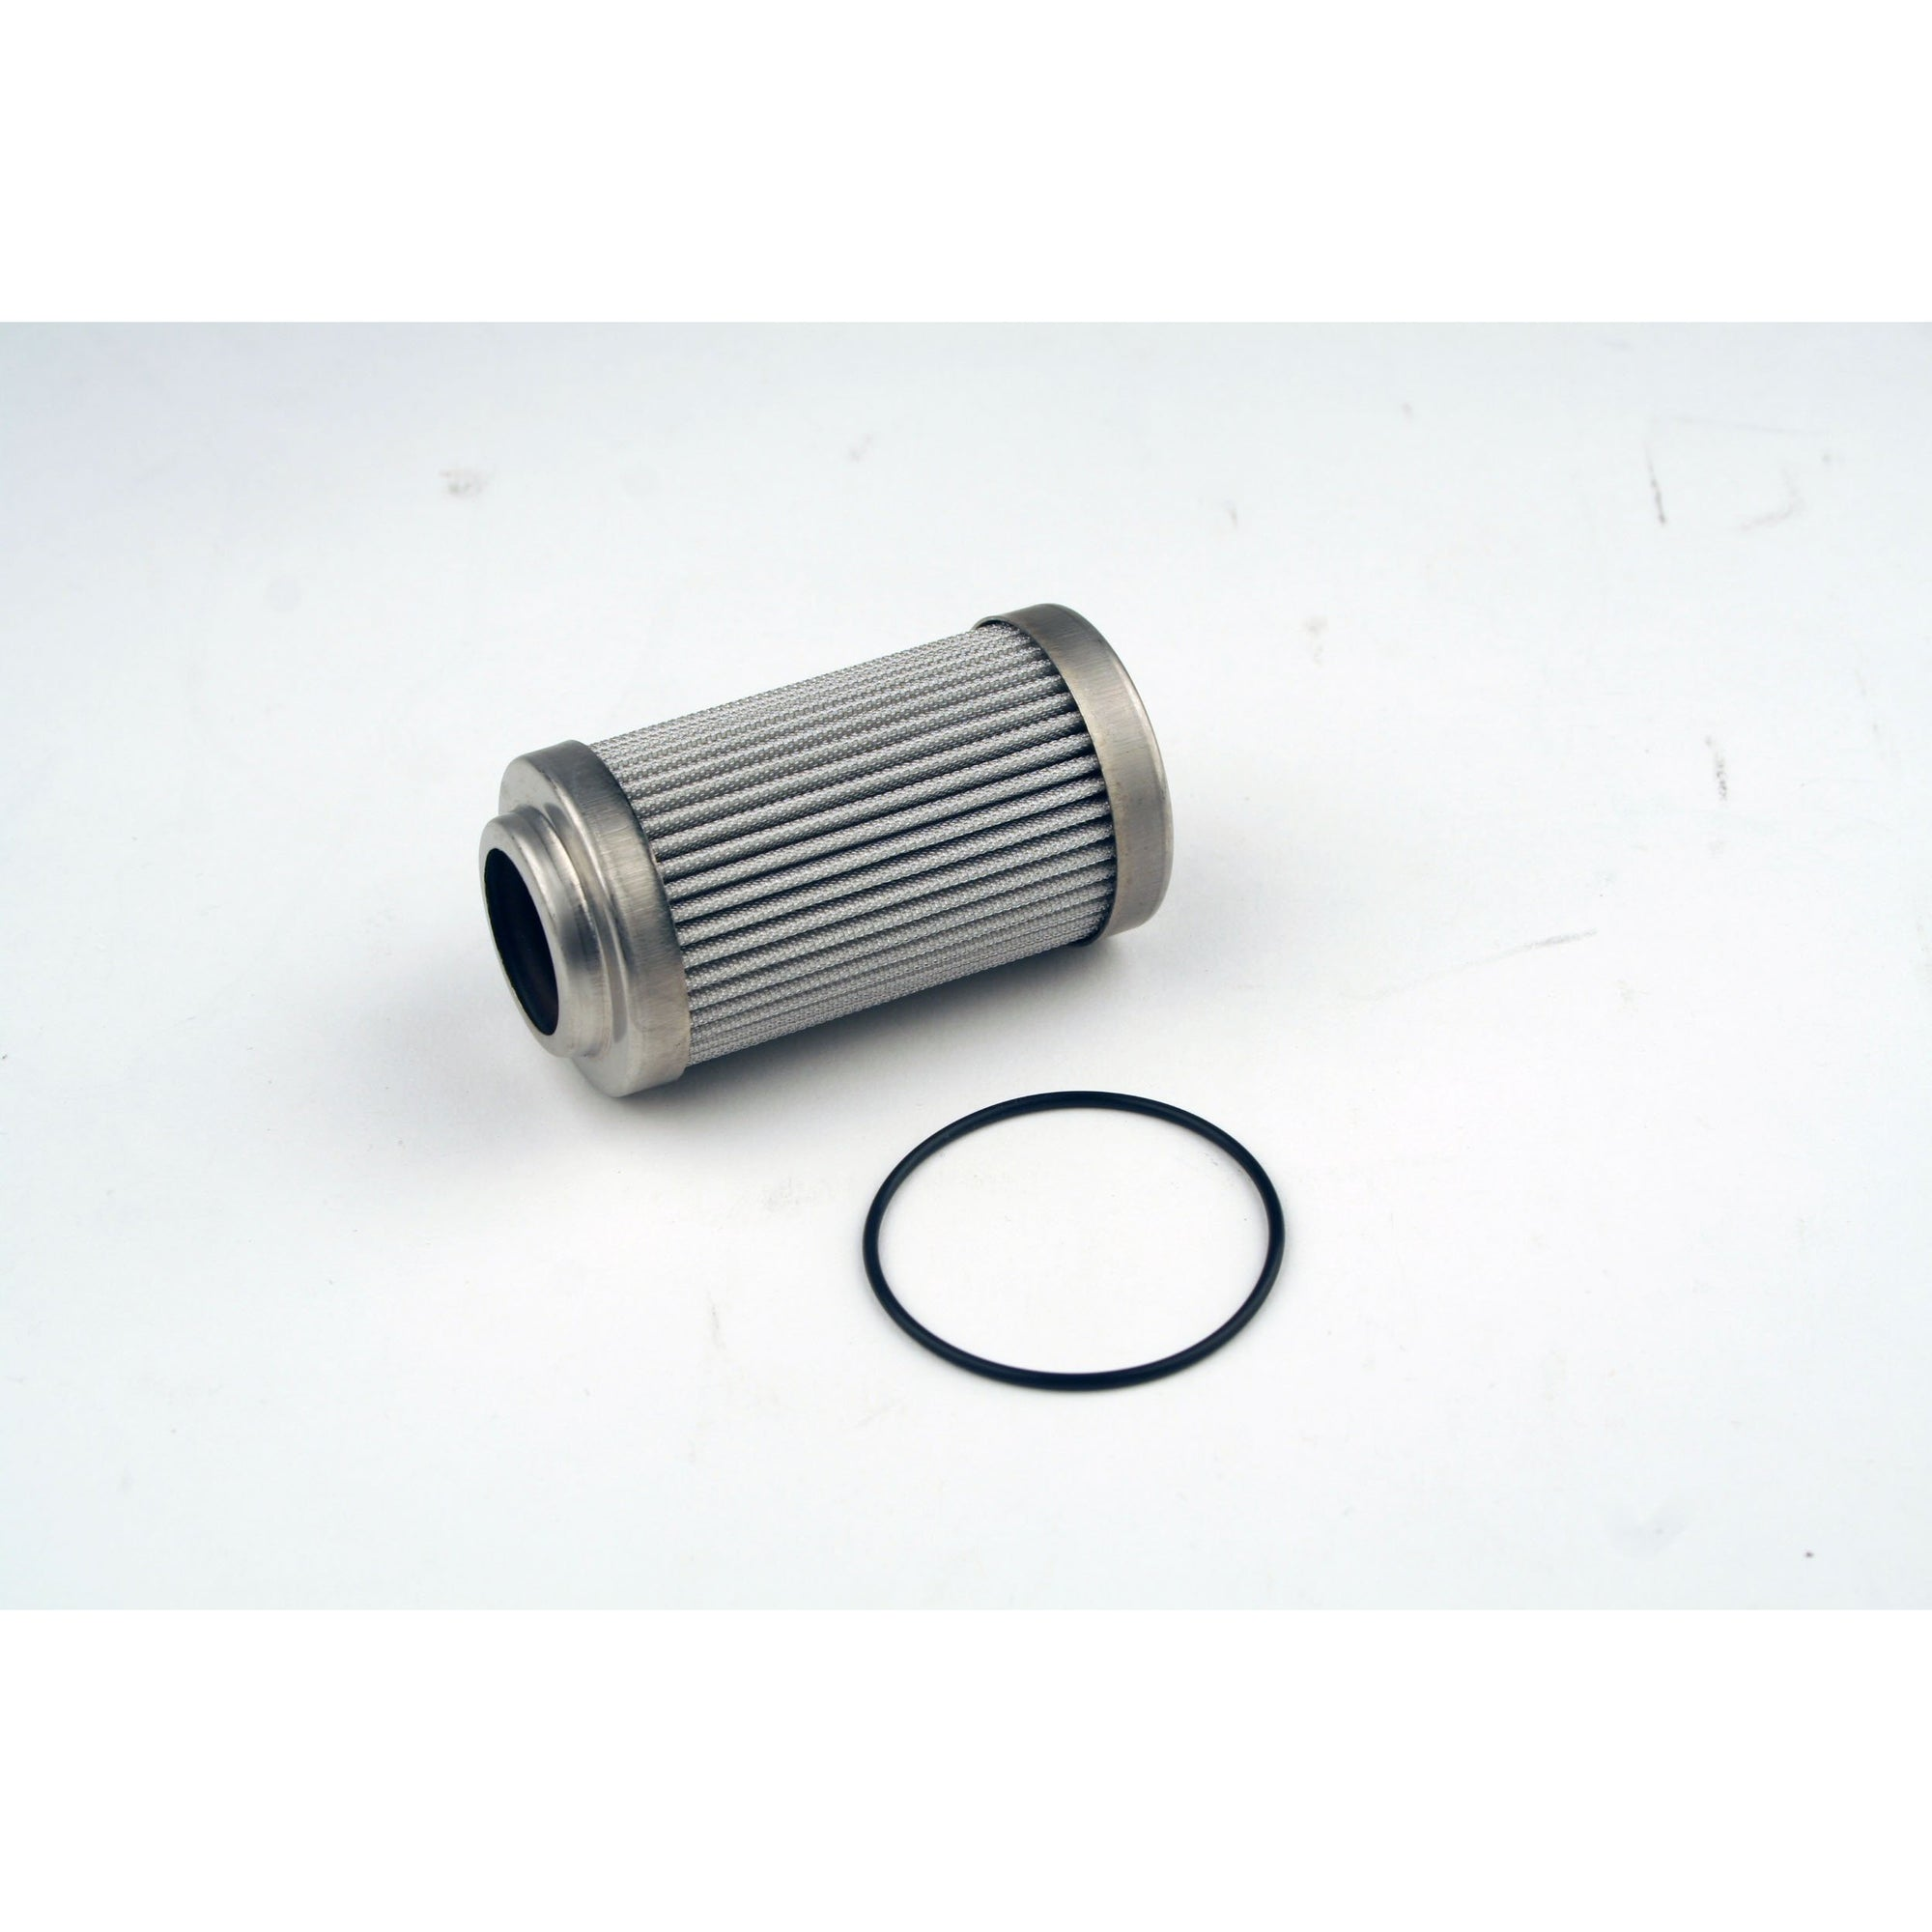 Aeromotive 10 Micron Microglass Element for -10 AN ORB Filter 12650-Aeromotive-Motion Raceworks